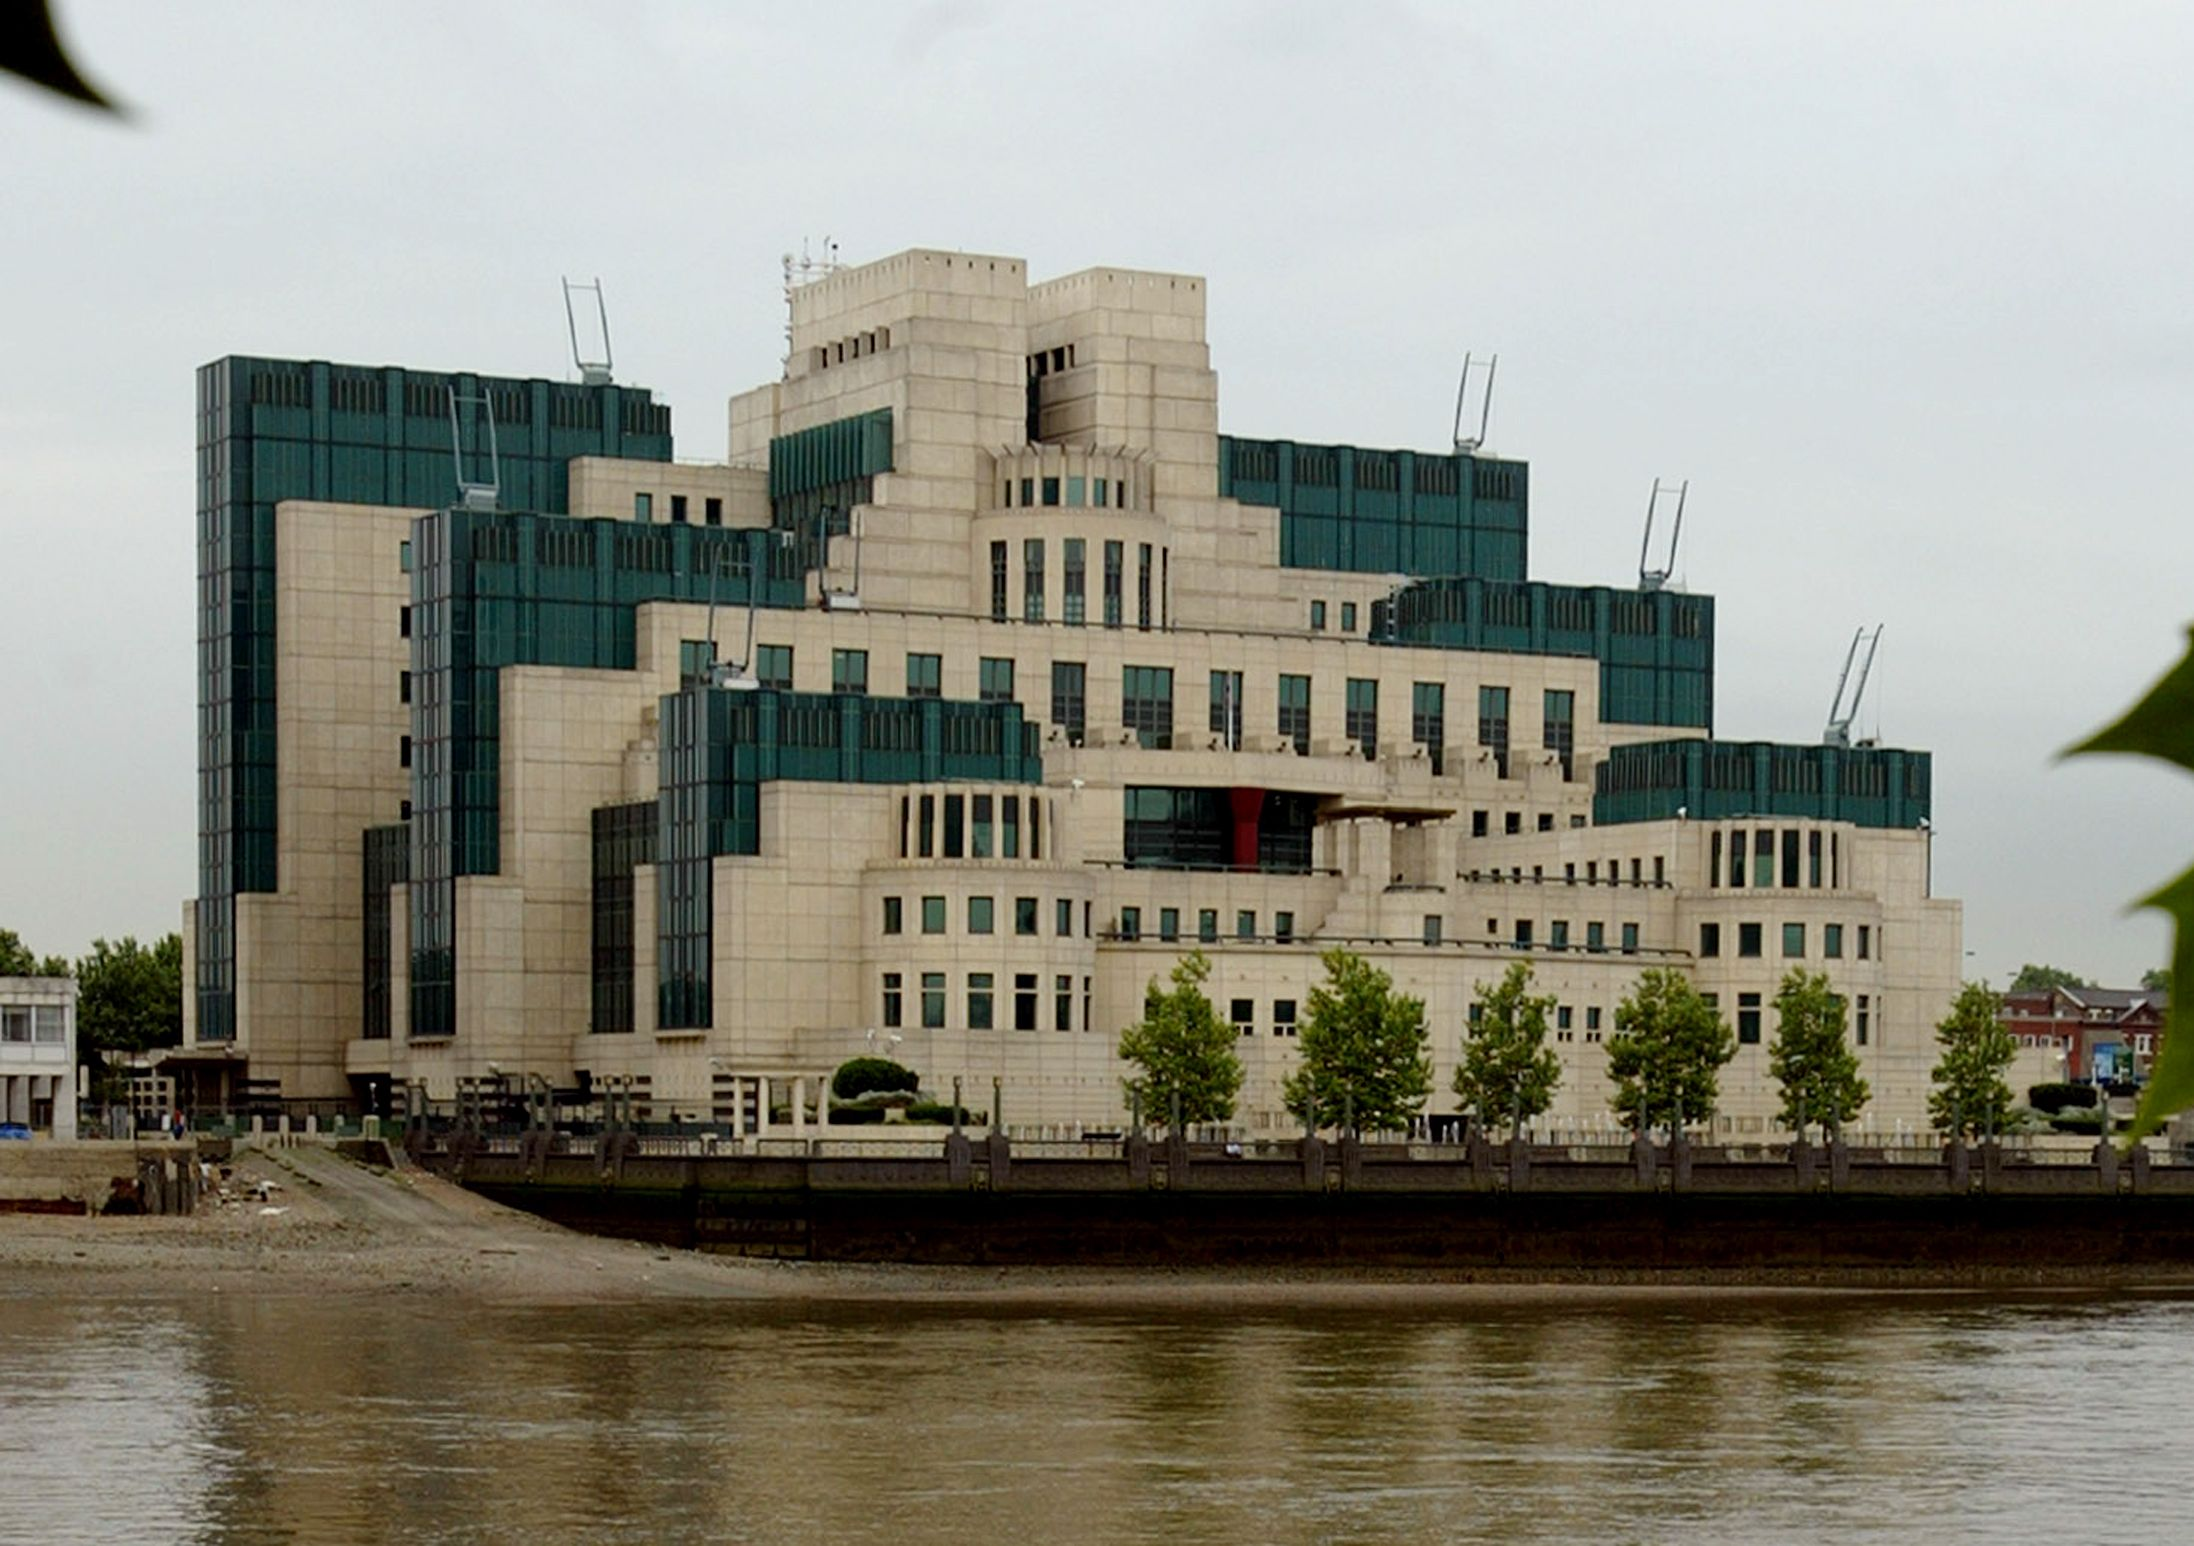 Oldest Continuously Surviving Intelligence Organization:  The British Secret Intelligence Service, also known as MI6 (Military Intelligence 6), has been operating since October 1909.